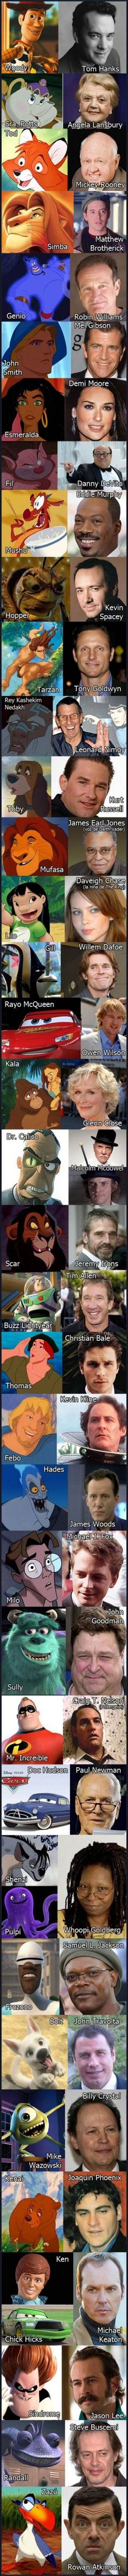 You may not know some of them, voices, walt, animation, pixar, disney, cartoons